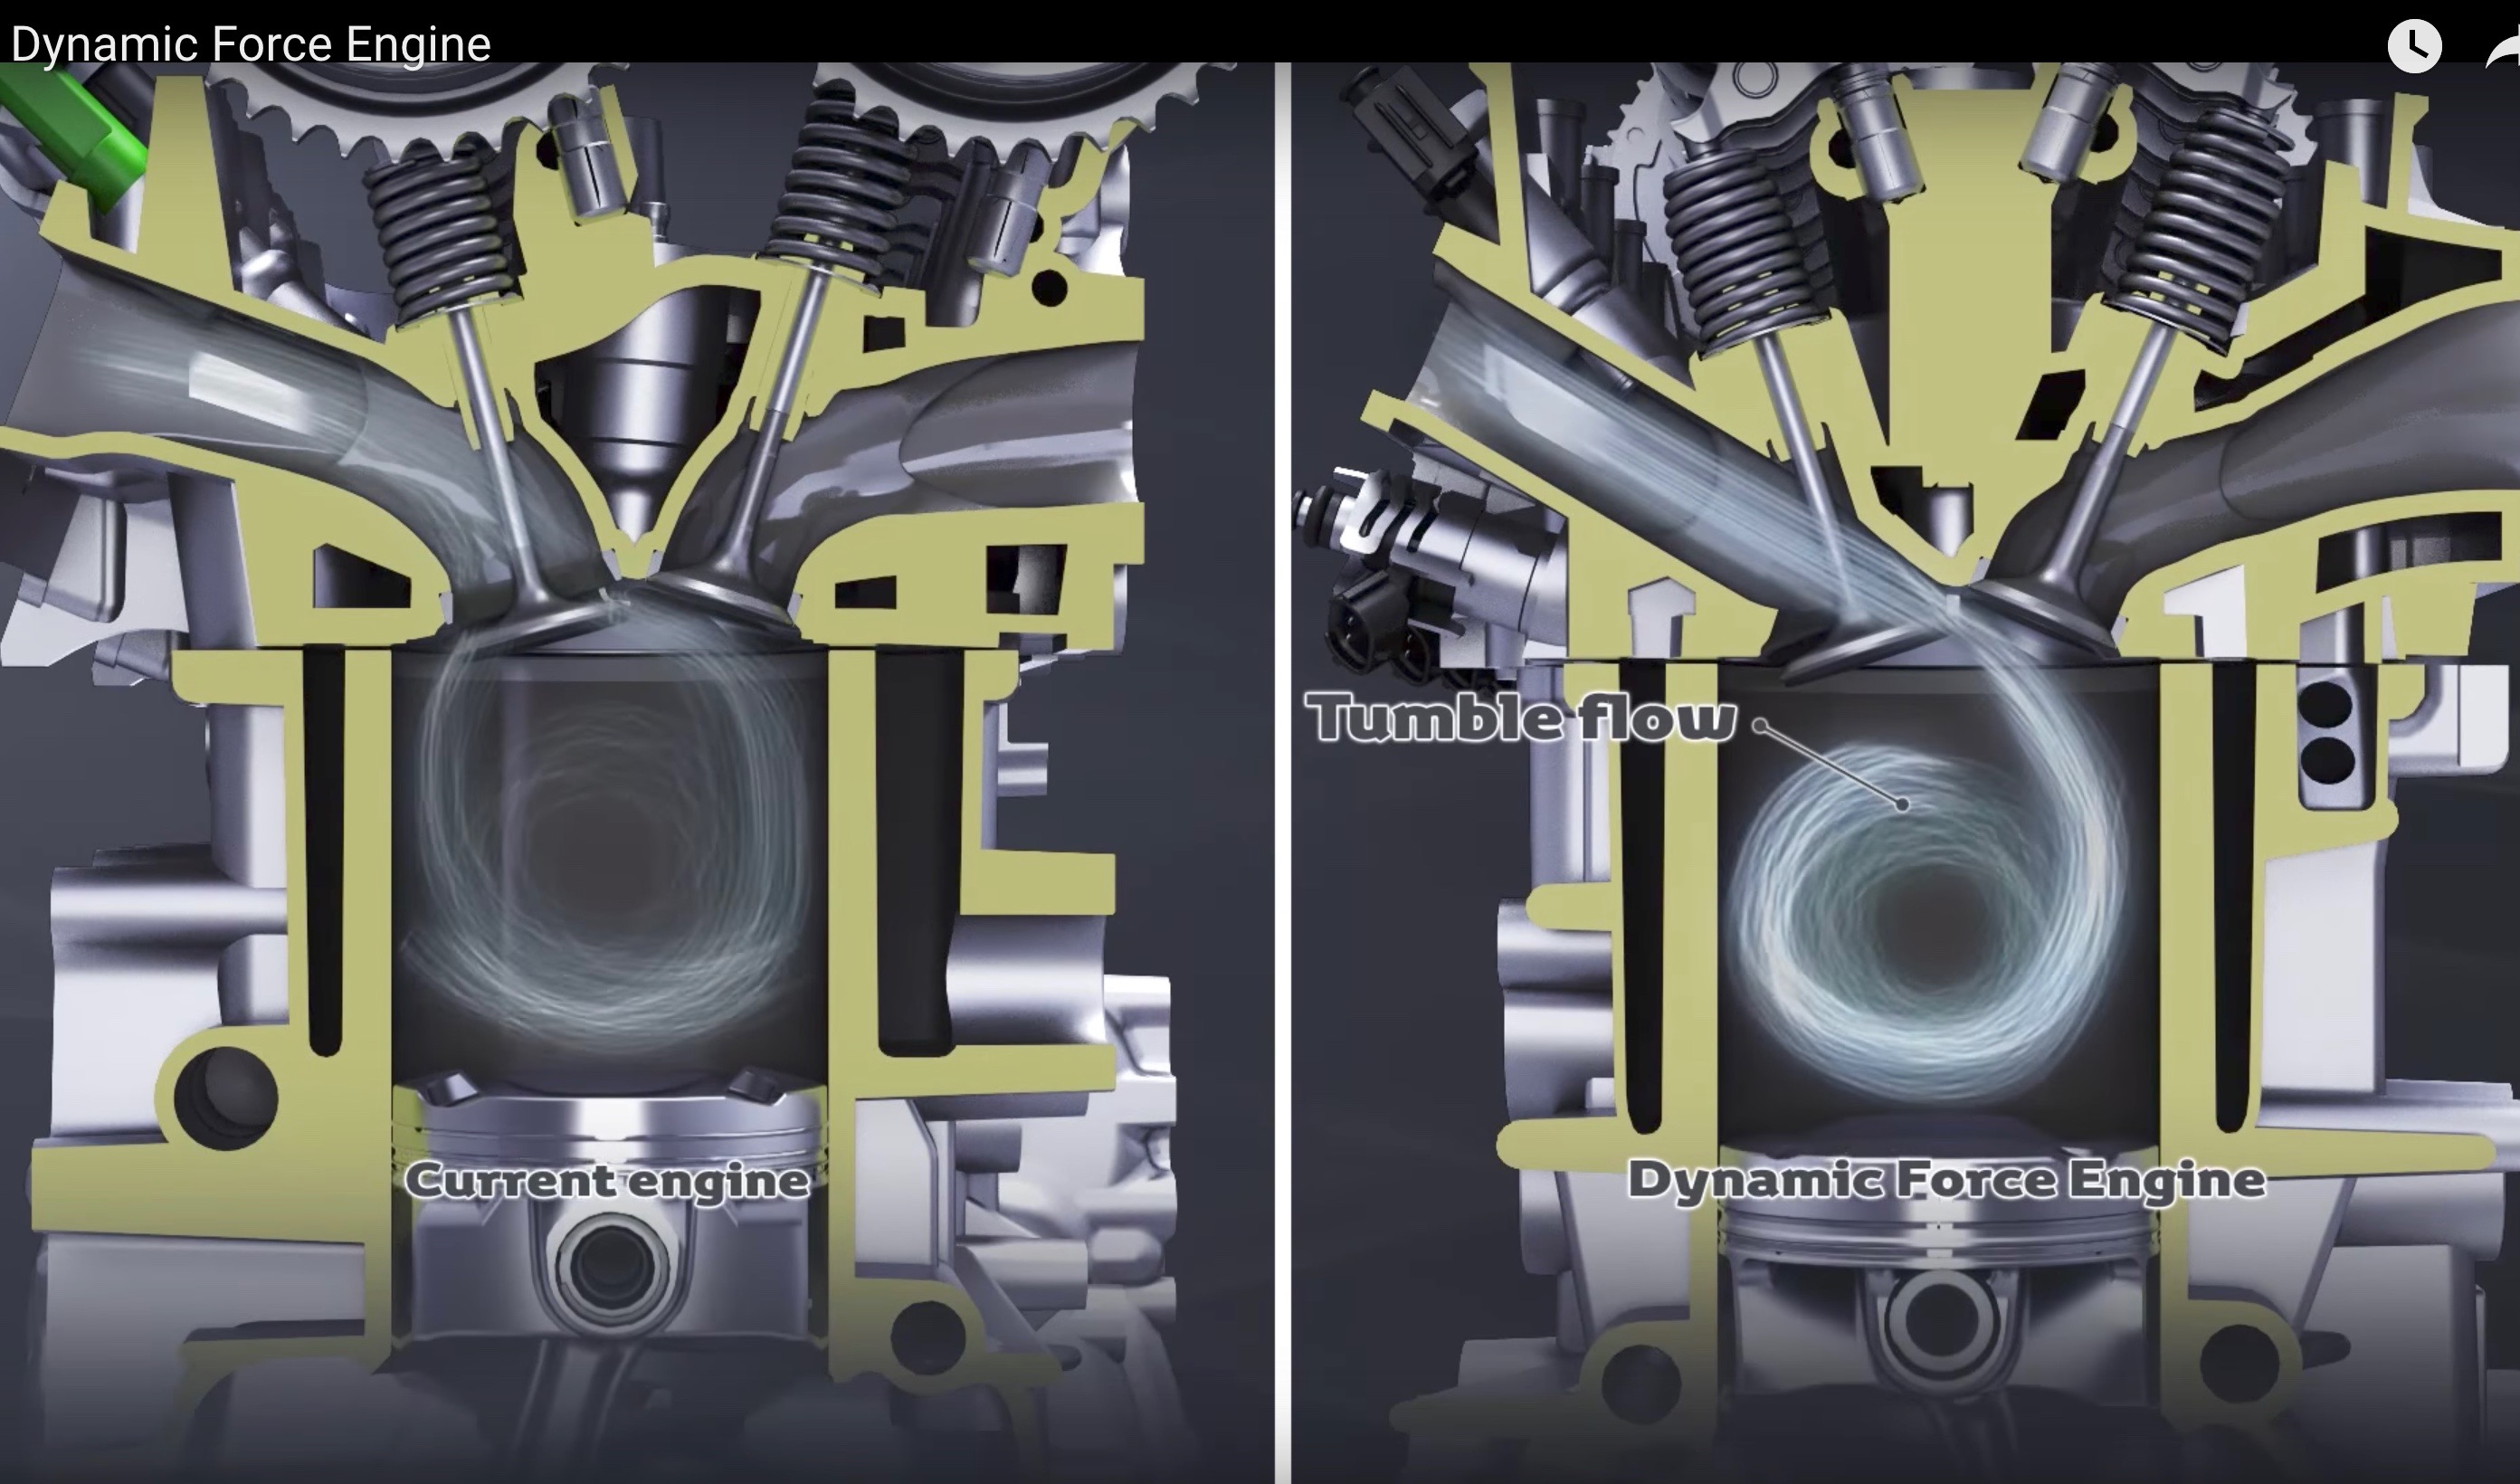 Toyota Dynamic Force Engine Tech To Spread Across